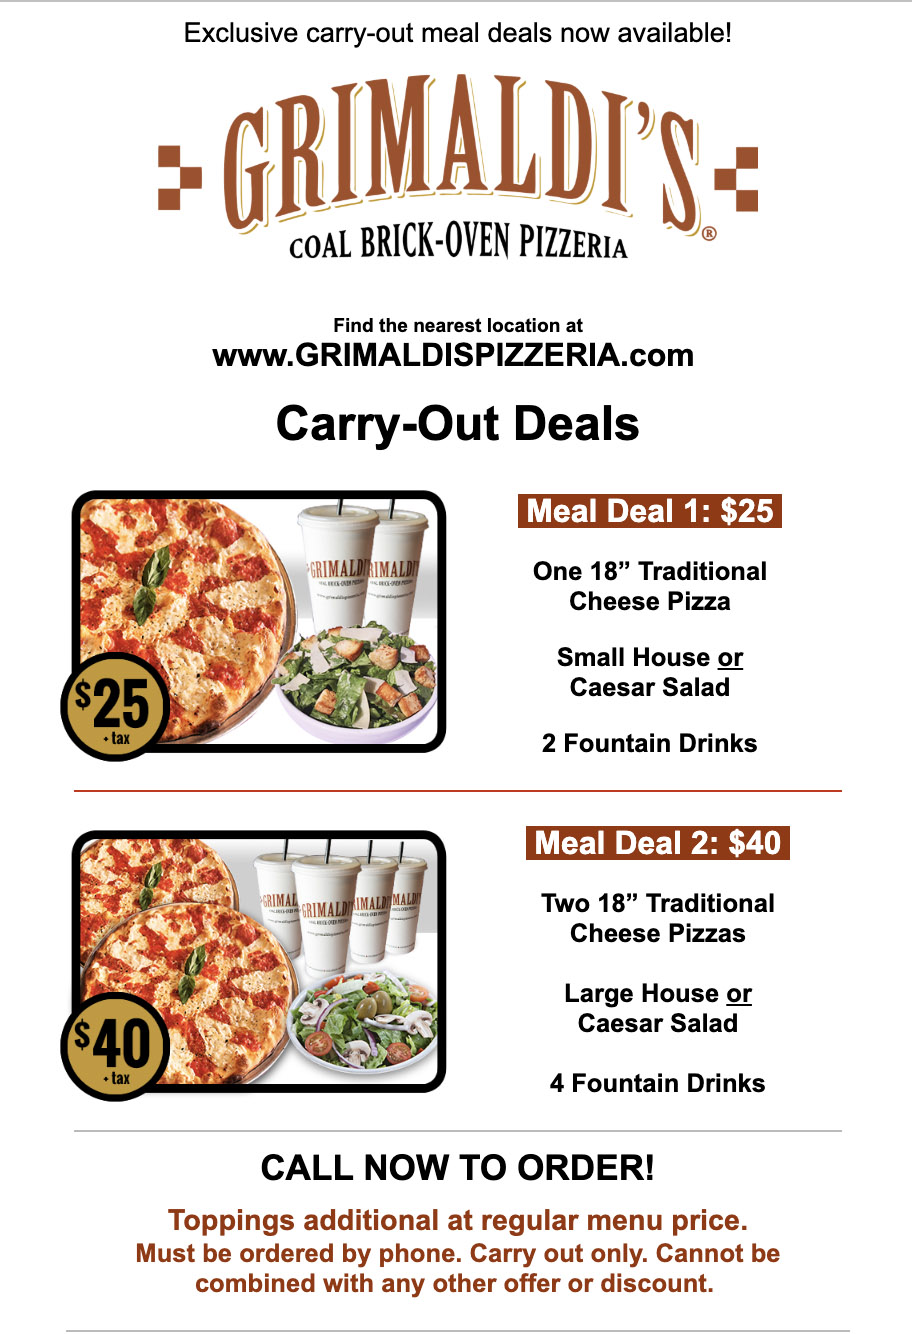 Grimaldi's Carry-Out Meal Deals